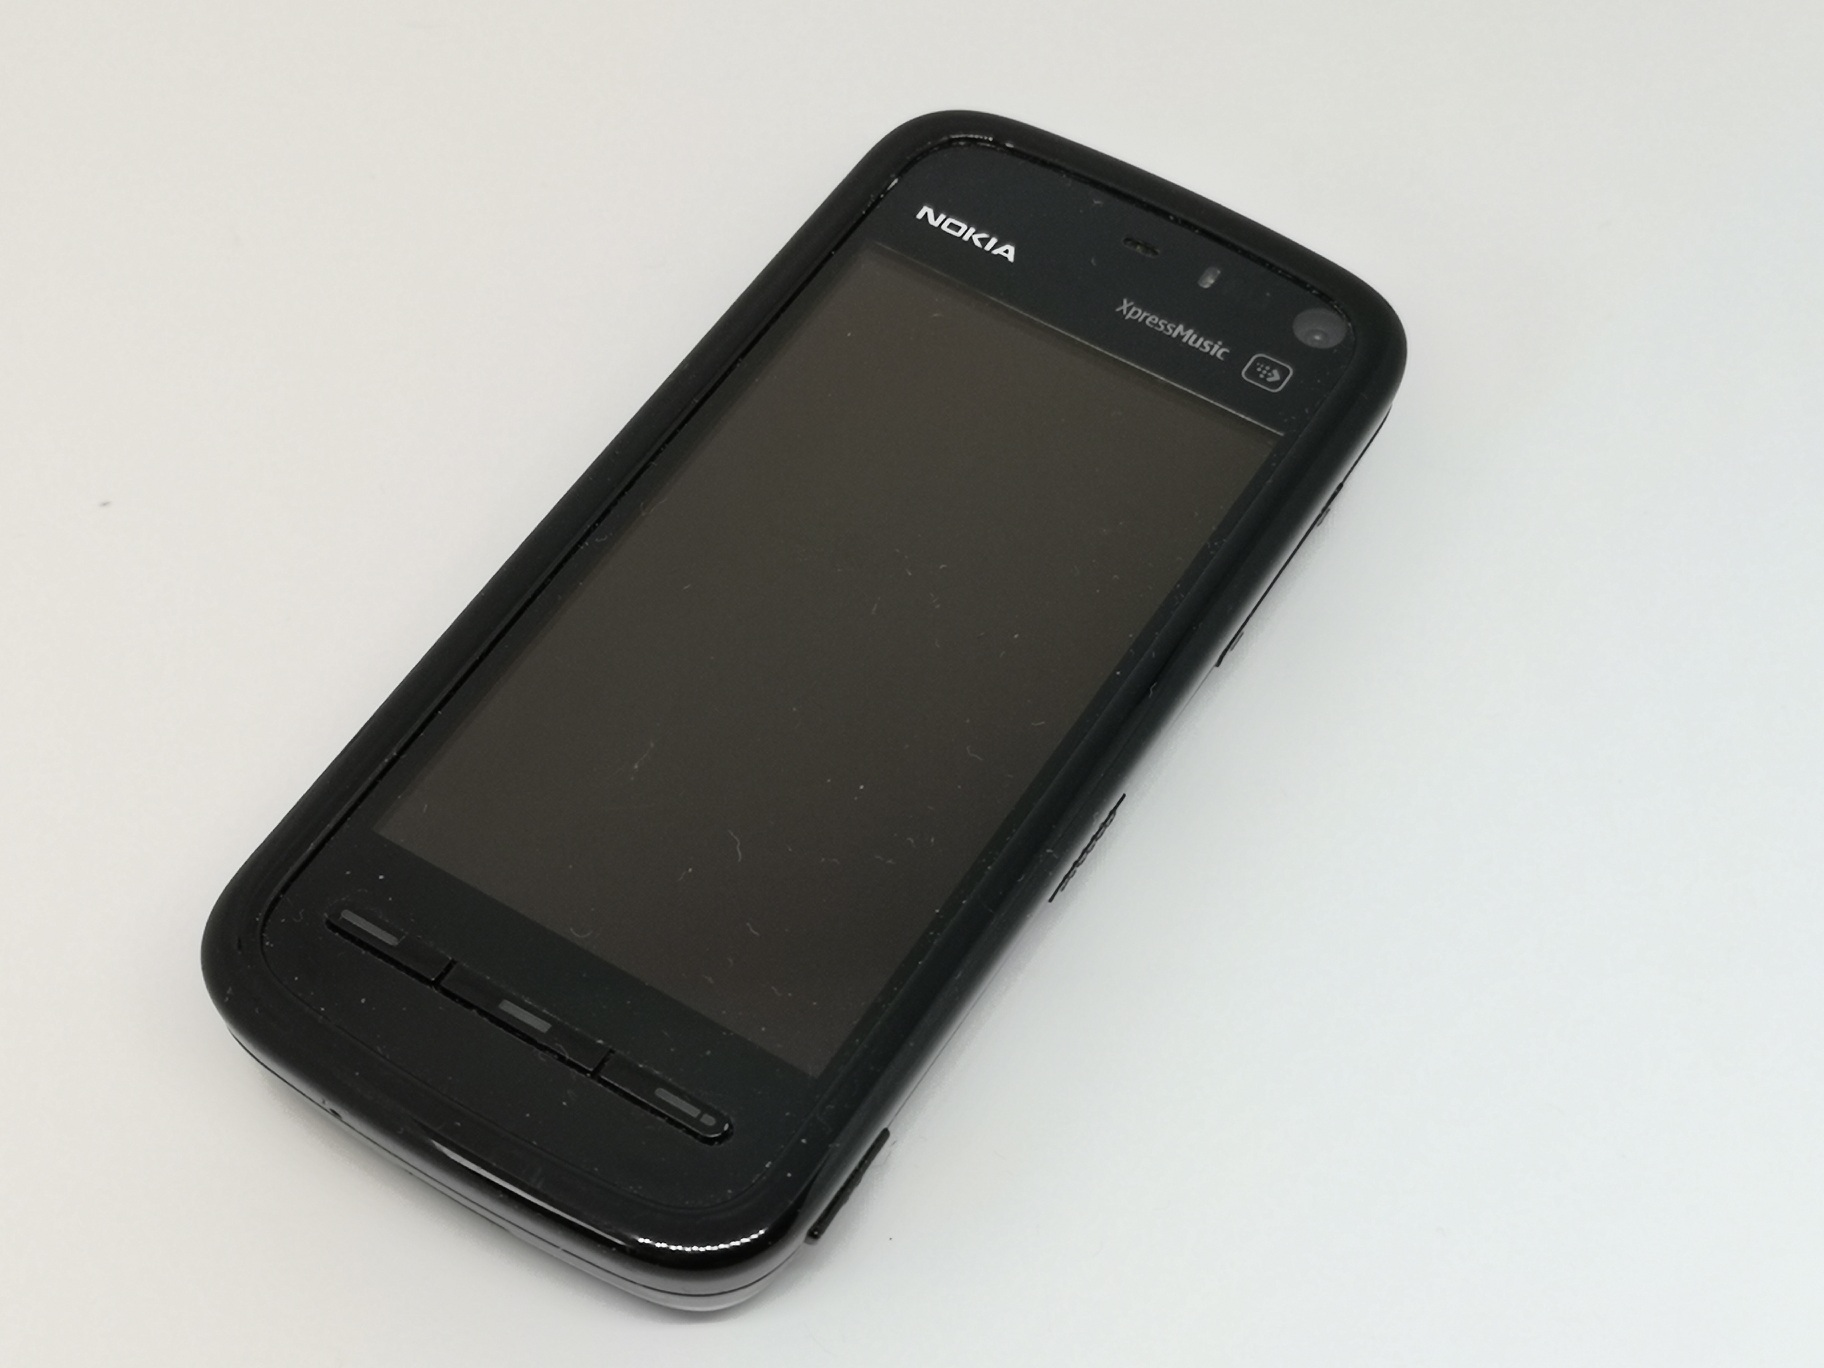 Nokia 5800 Review - XpressMusic Model Answer to iPhone